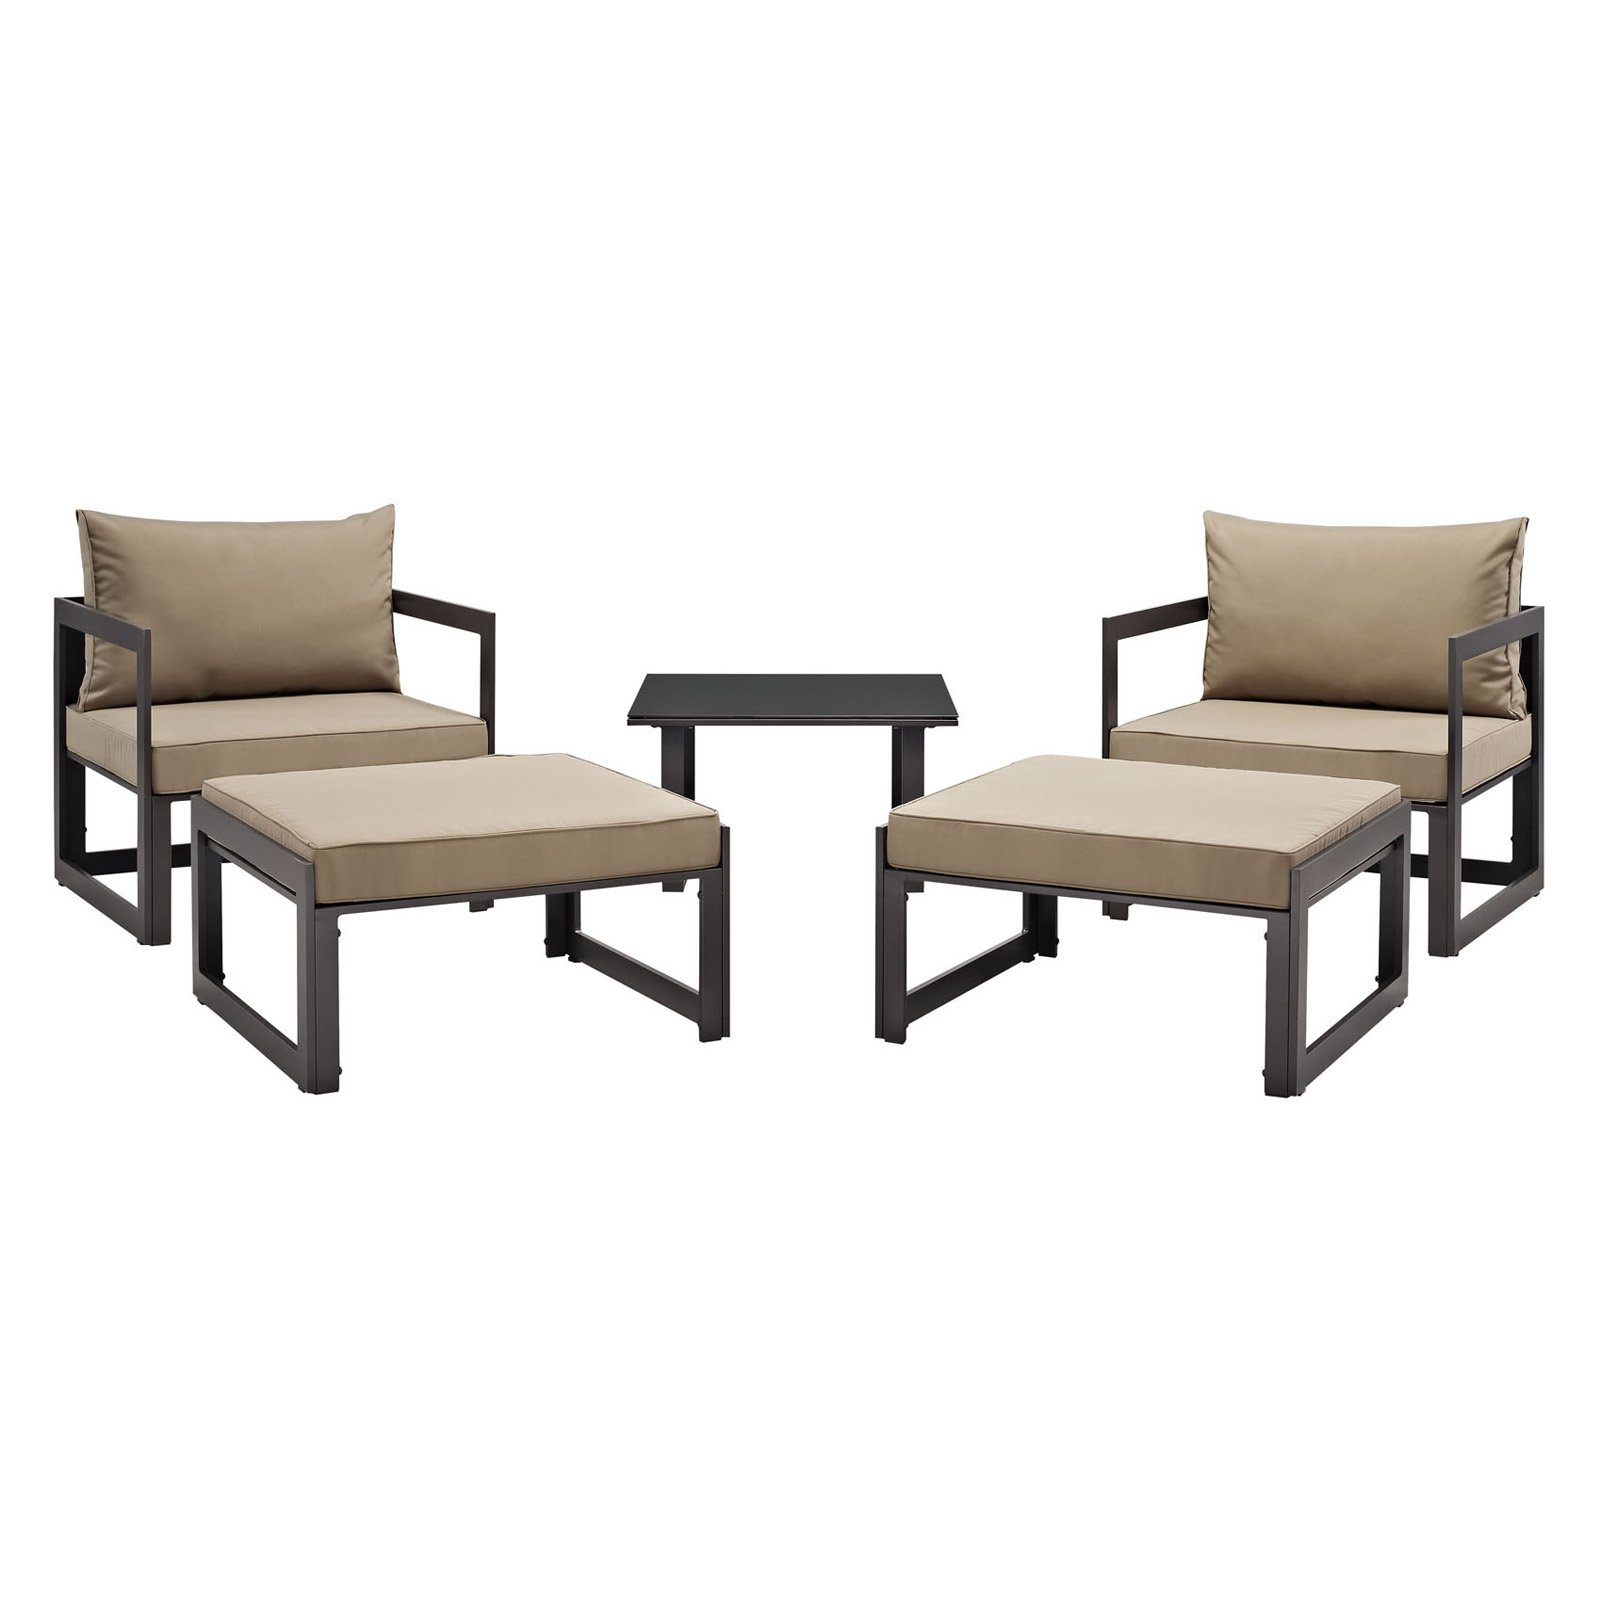 Modway Fortuna 5 Piece Outdoor Patio Sectional Sofa Set, Multiple Colors